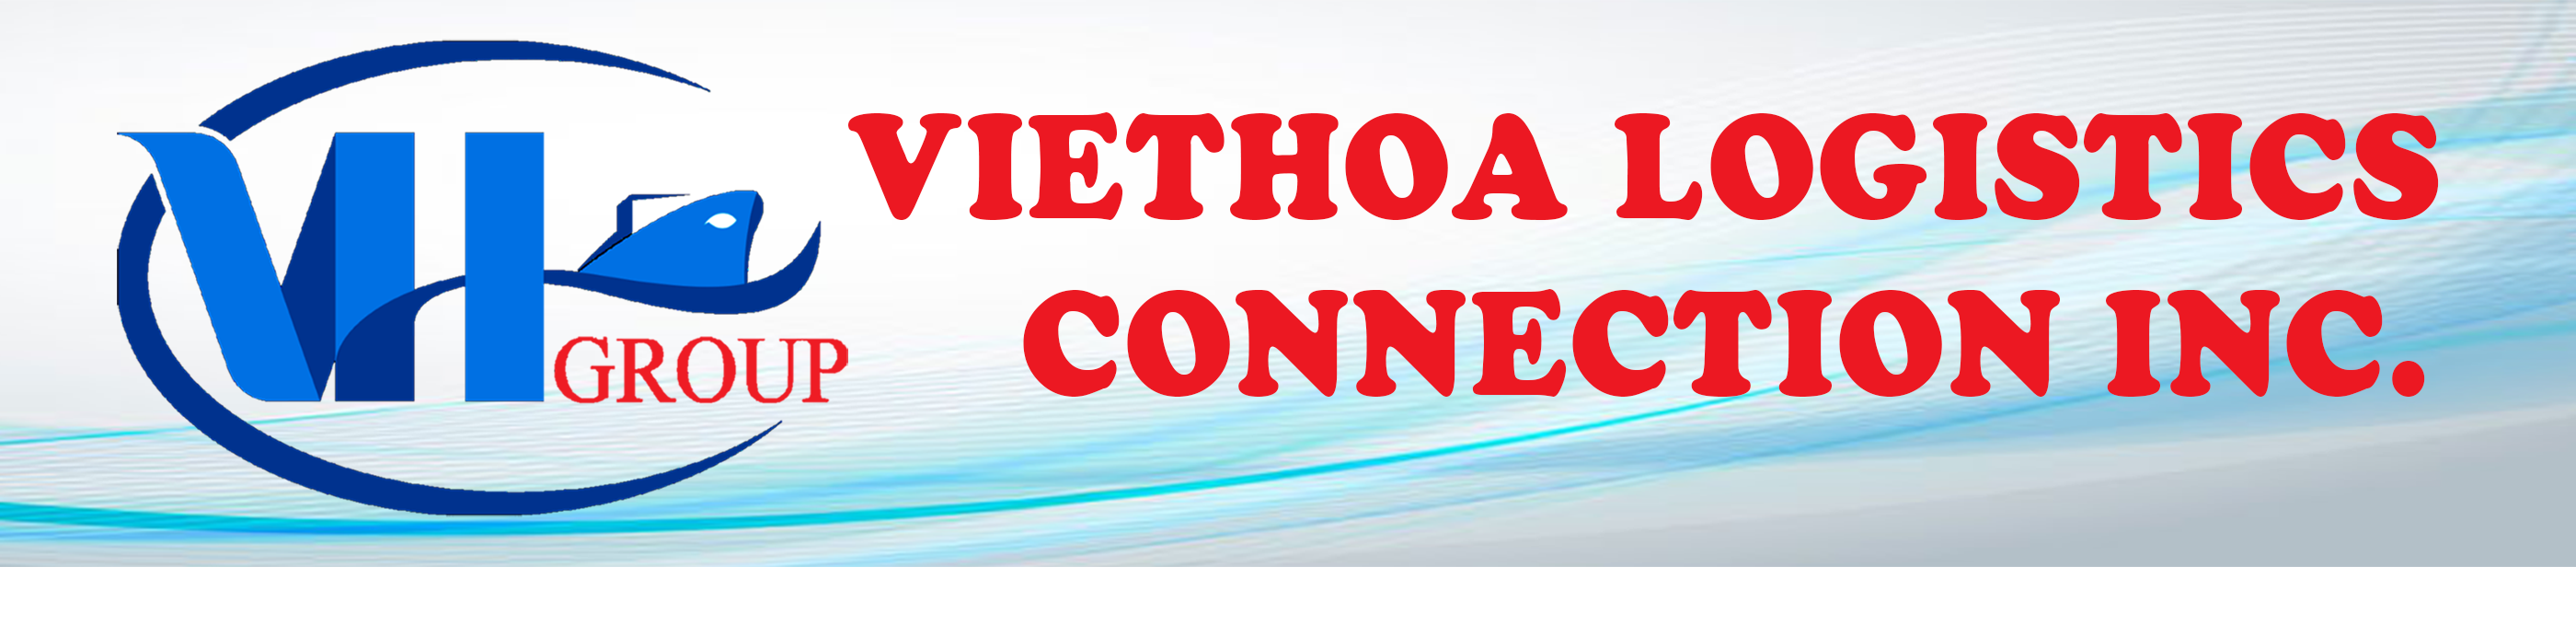 VIETHOA LOGISTICS CONNECTION INC